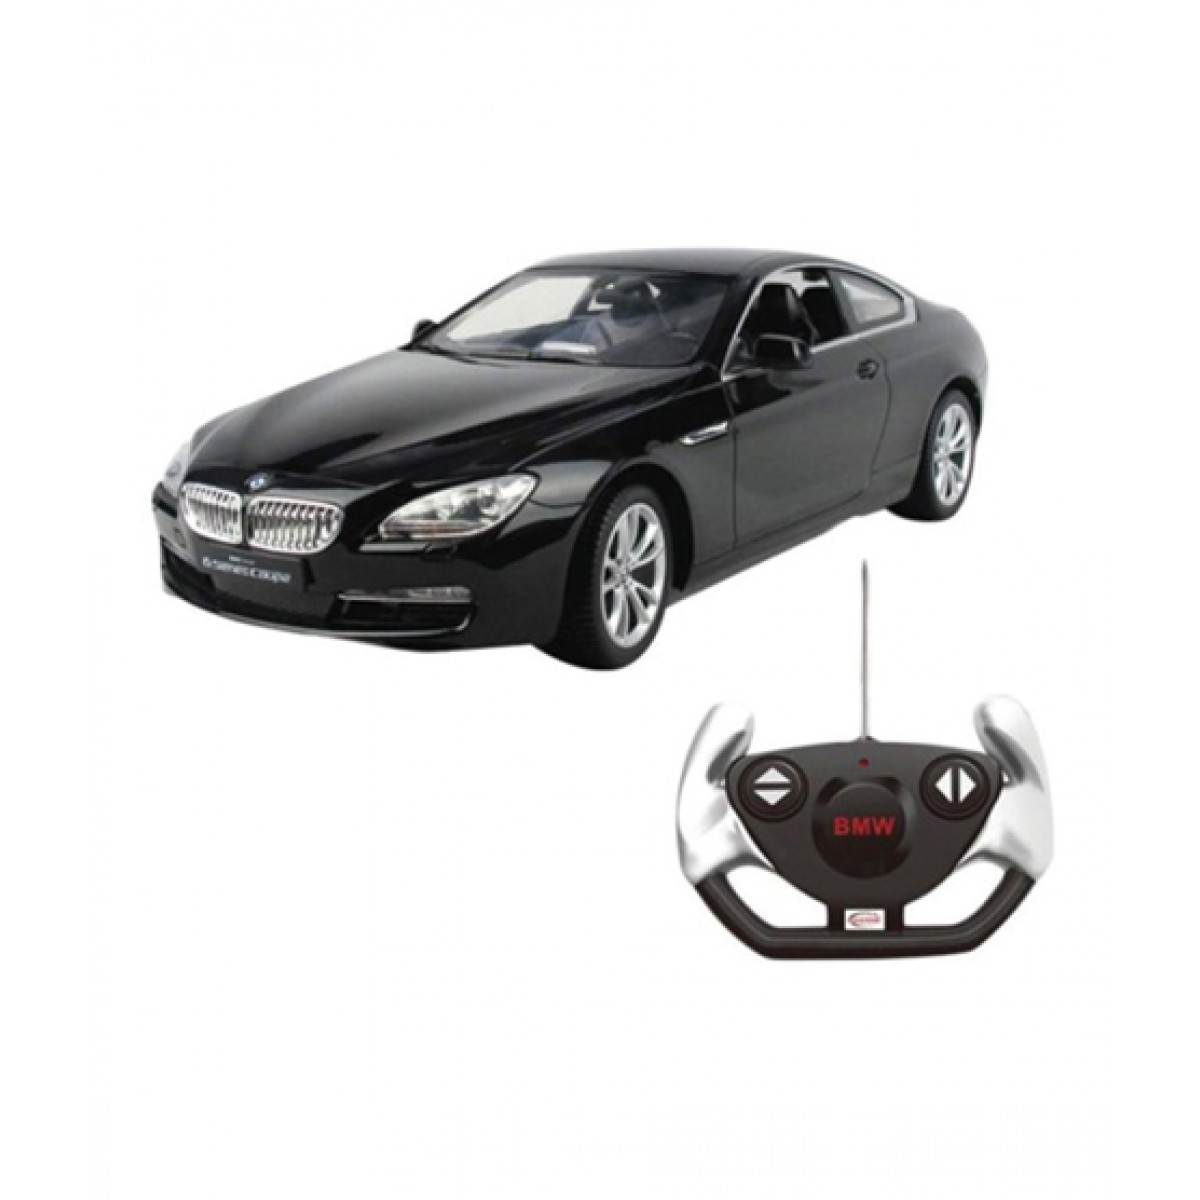 Toymart Licensed Bmw 6 Series Rc Car Price In Pakistan Buy Toymart Bmw 6 Series Rc Car Black Ishopping Pk